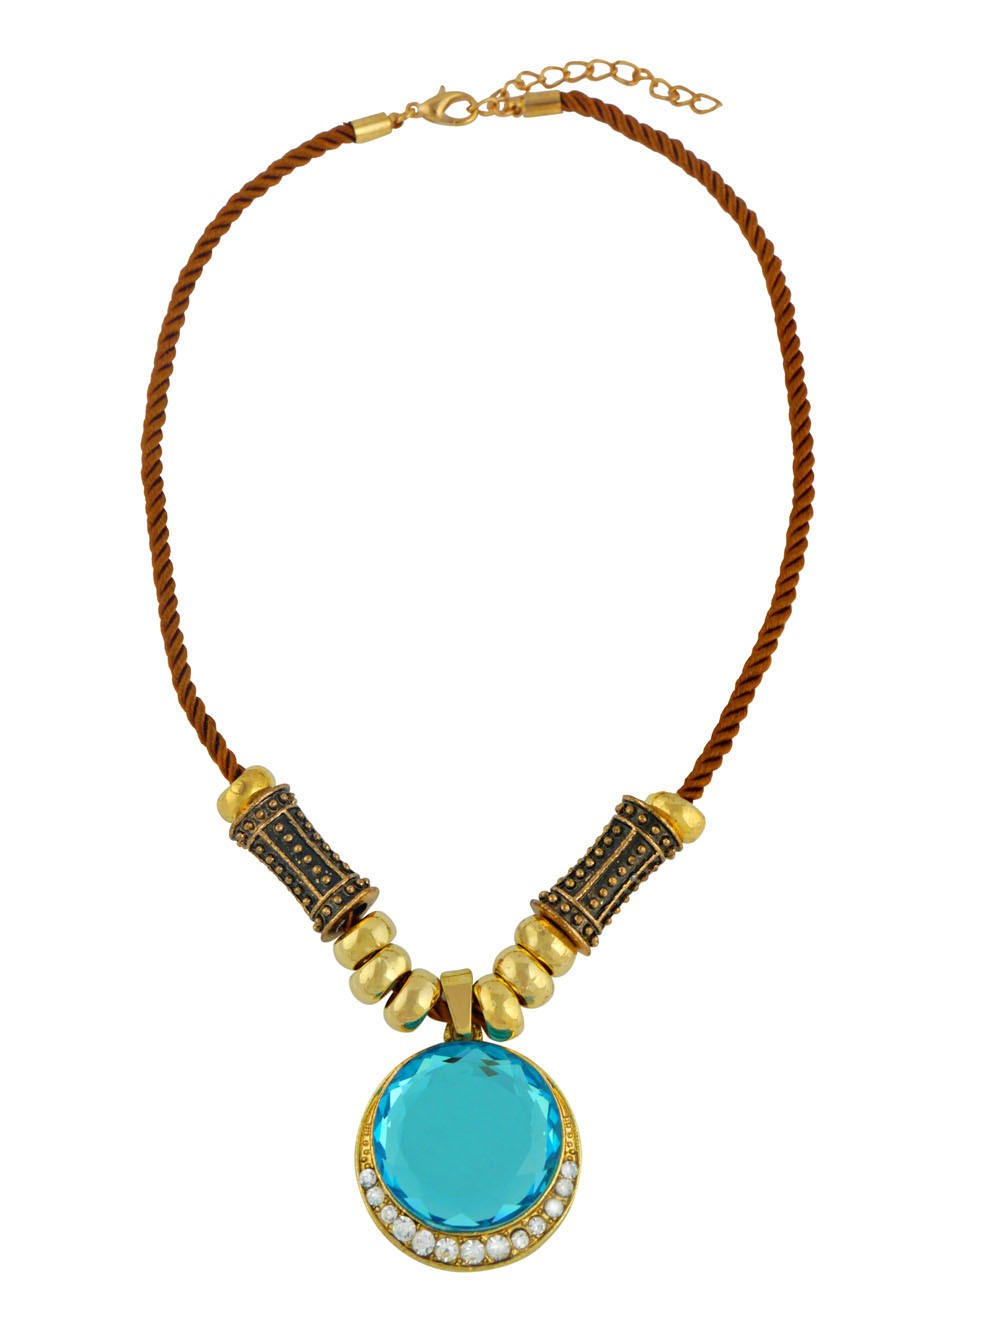 Golden Tone Circle Pendant with Blue Stone Fashion Necklace